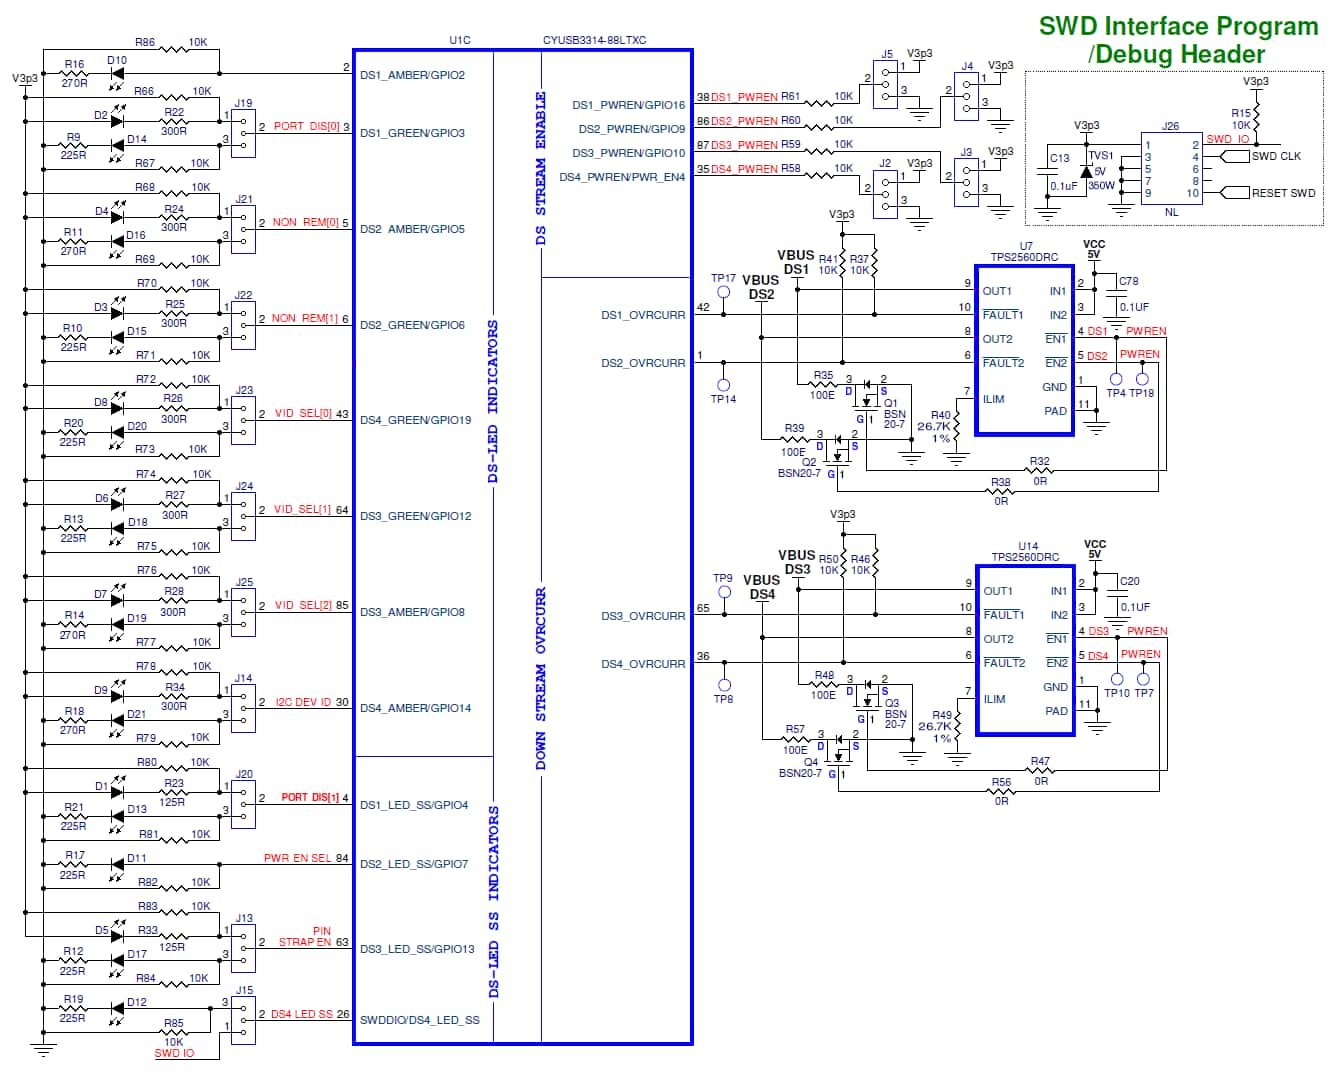 hight resolution of cy4603 hx3 kit schematic 2 full png cy4603 hx3 kit schematic 3 full png cy4603 hx3 kit schematic 4 full png